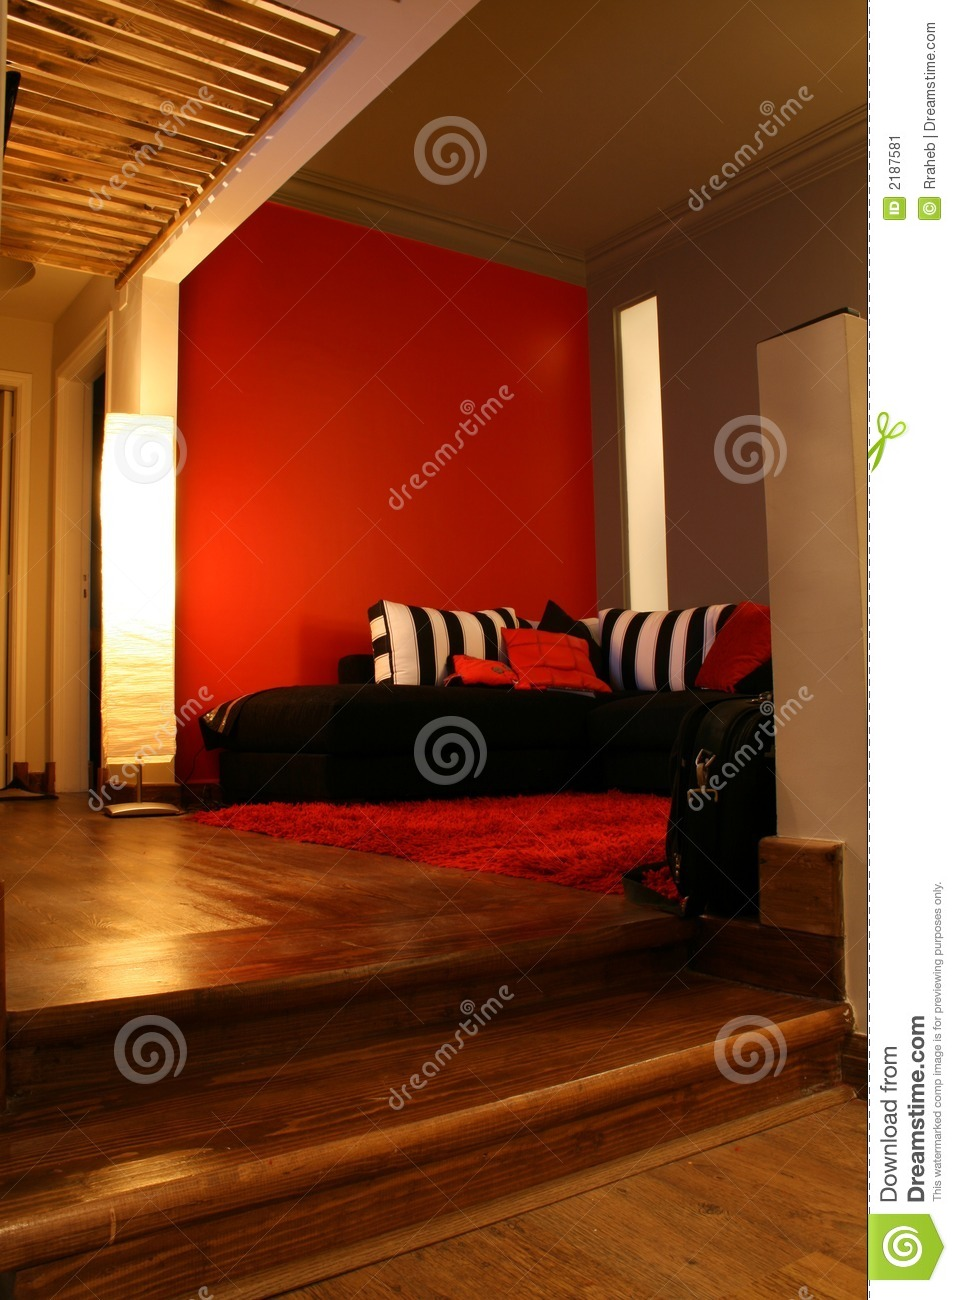 Modern Decorated Living Rooms Modern Interiorsliving Rooms Stock Image Image 2187581